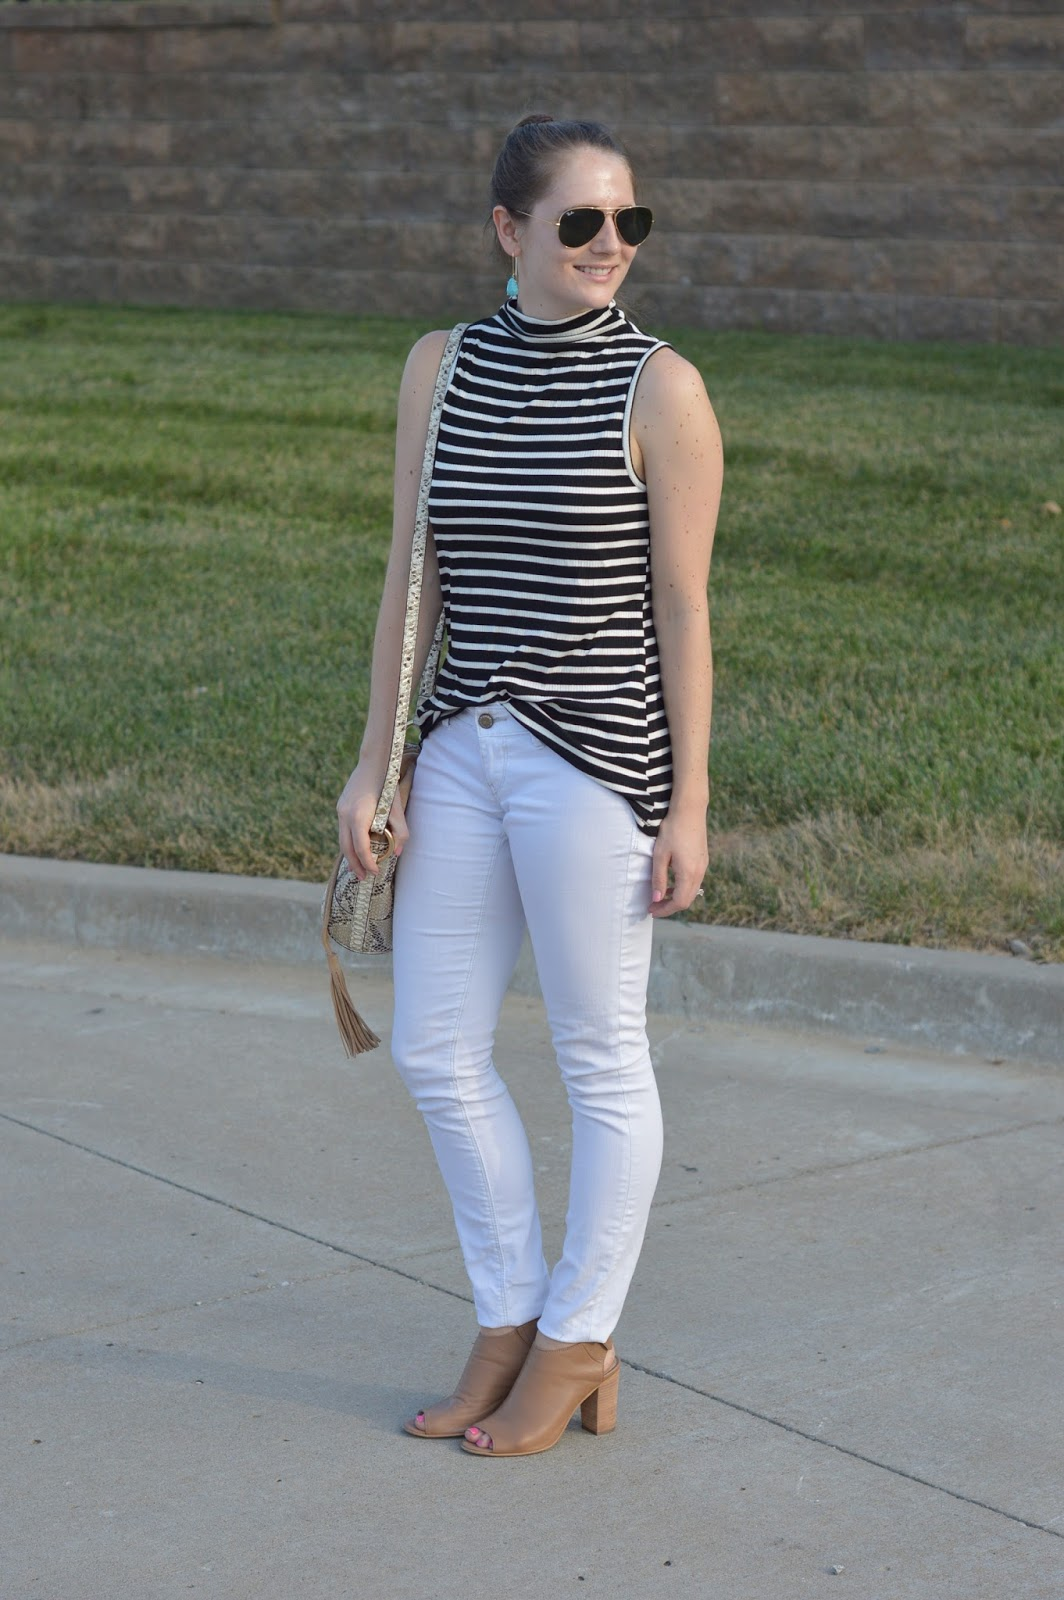 white jeans with a striped top | summer outfit ideas | cute outfit ideas | preppy outfit ideas | striped top with white jeans | a memory of us |